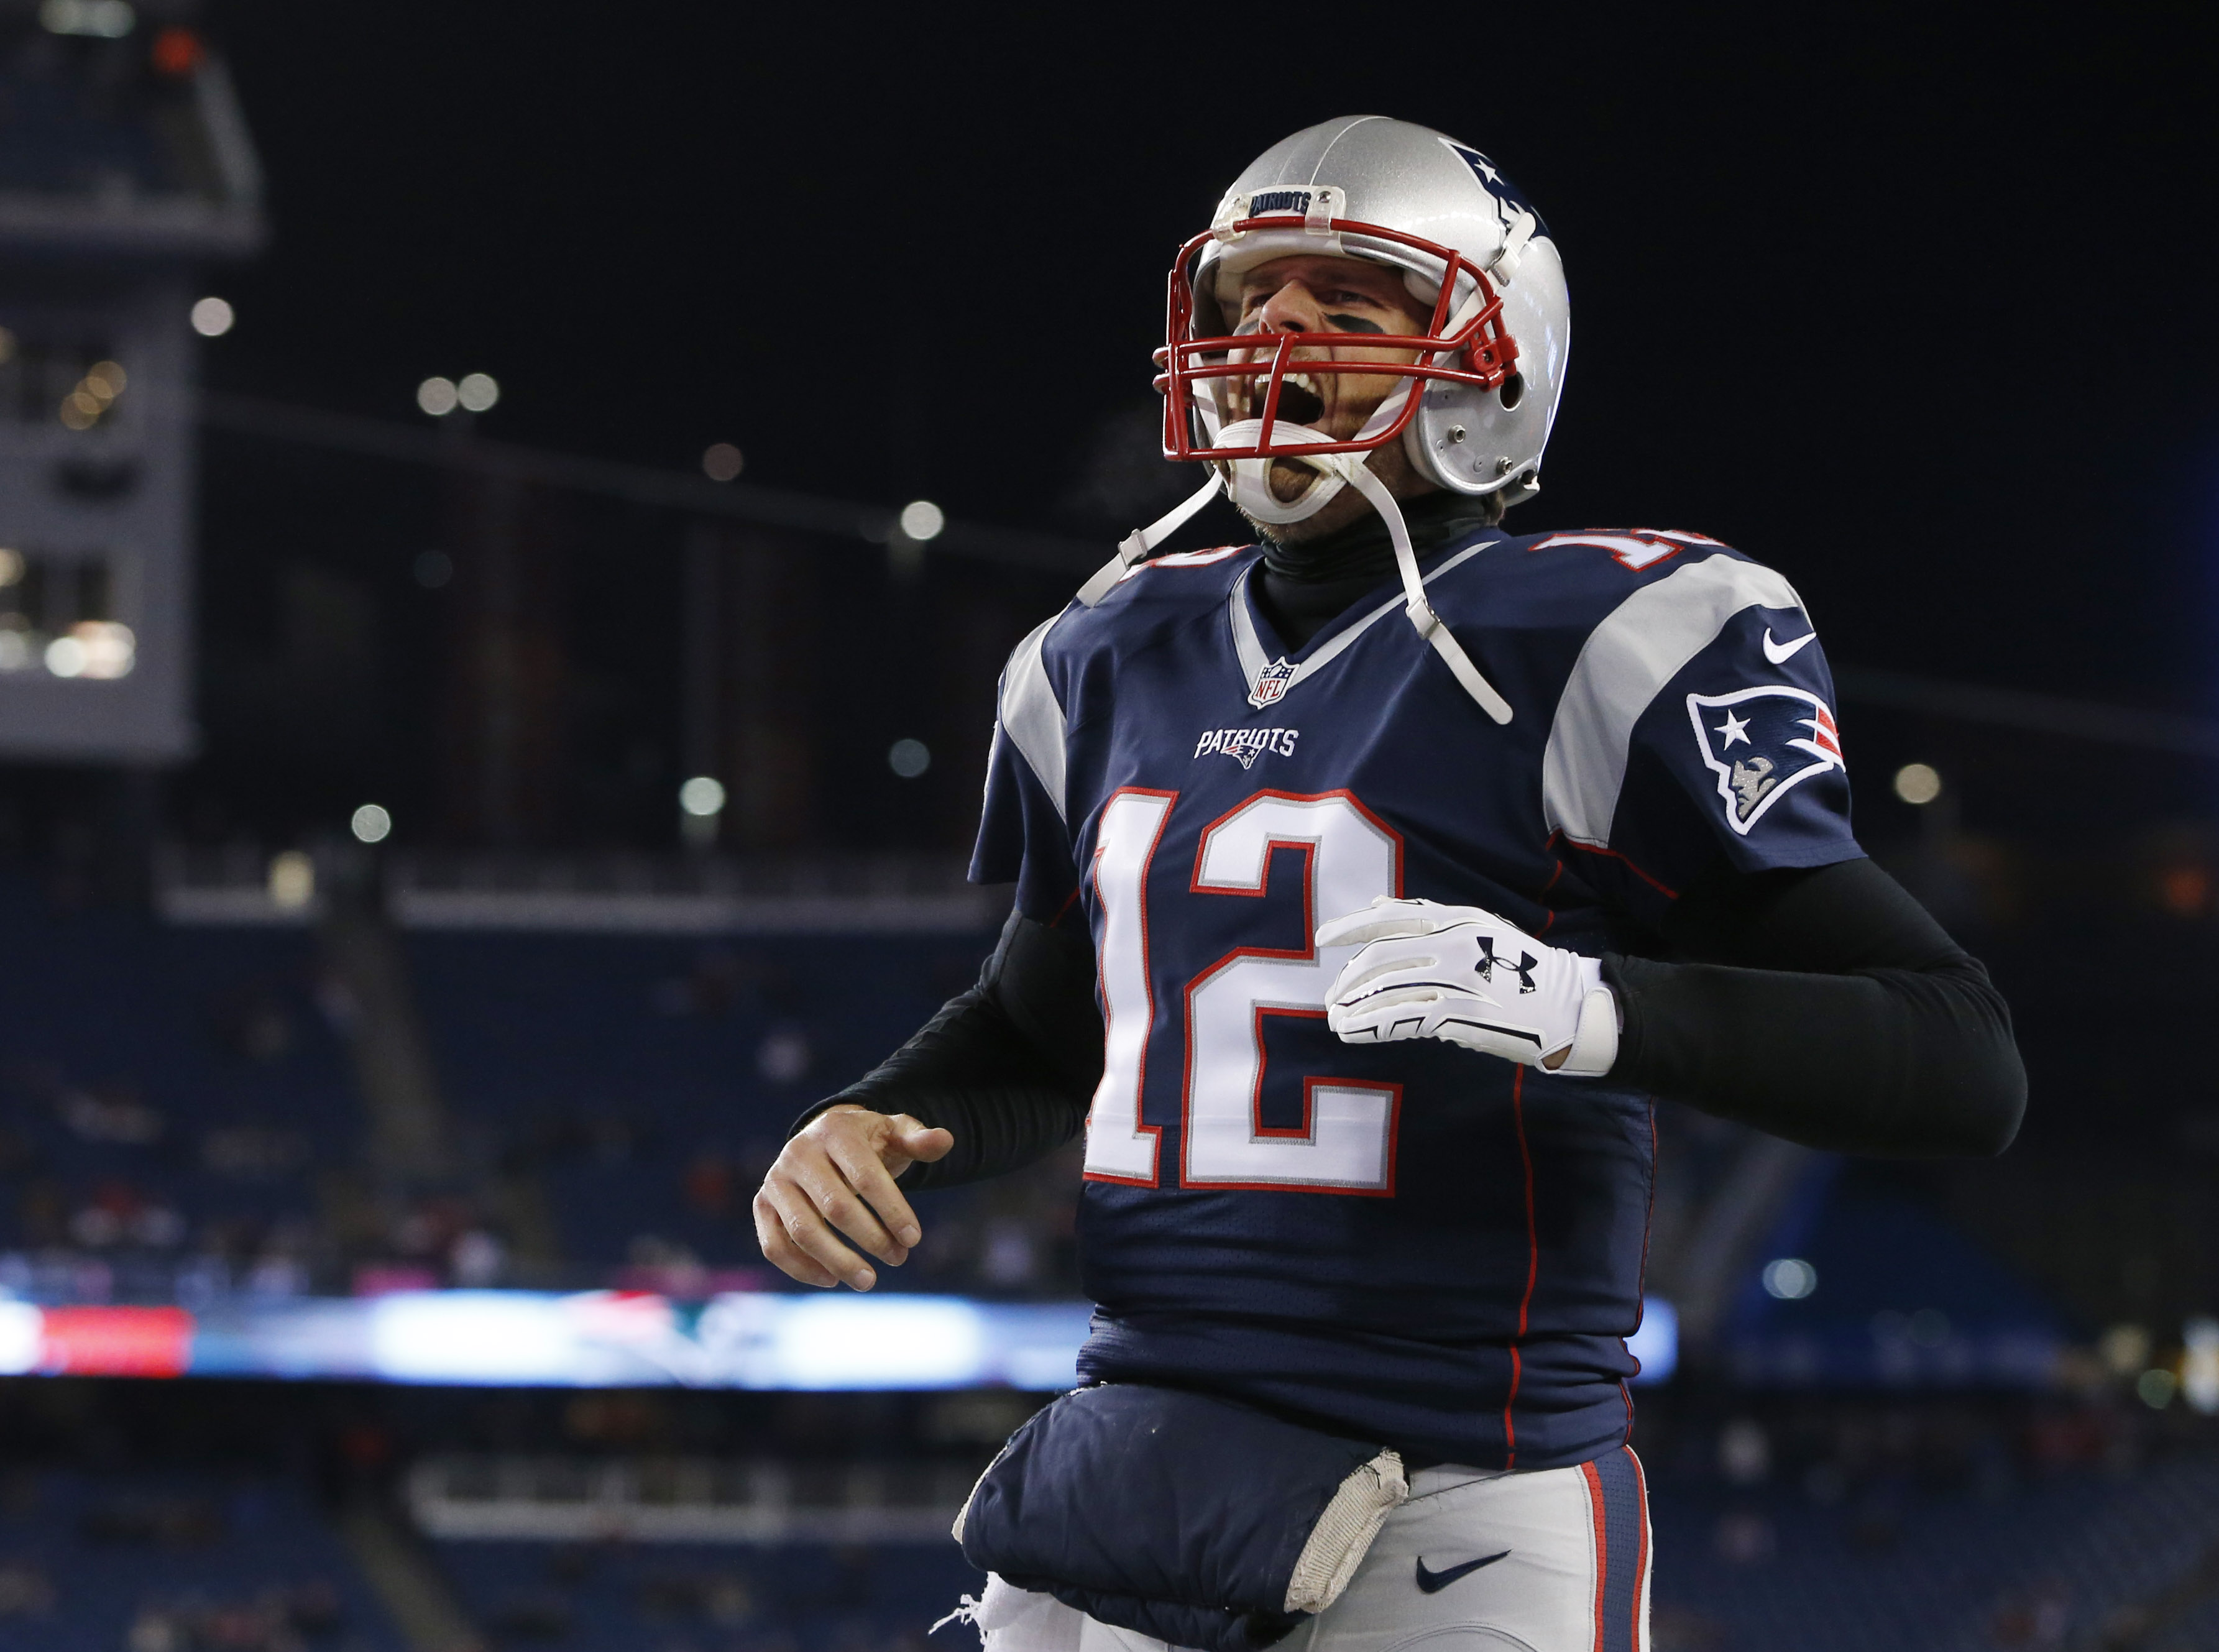 Afc Championship 2017 Steelers Vs Patriots Preview